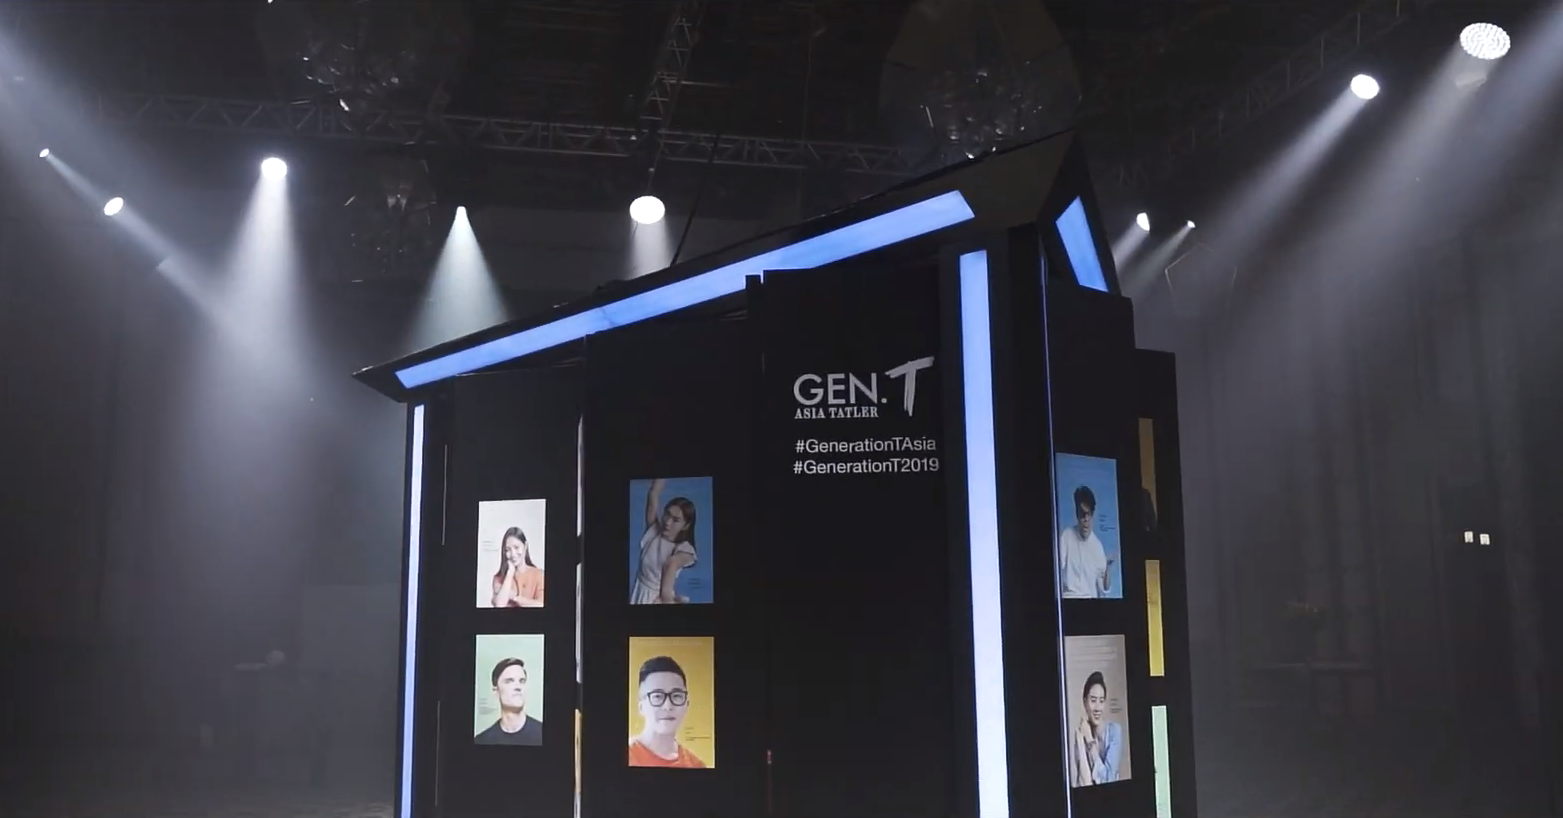 Video: Highlights From The Gen.T List 2019 Unveiling